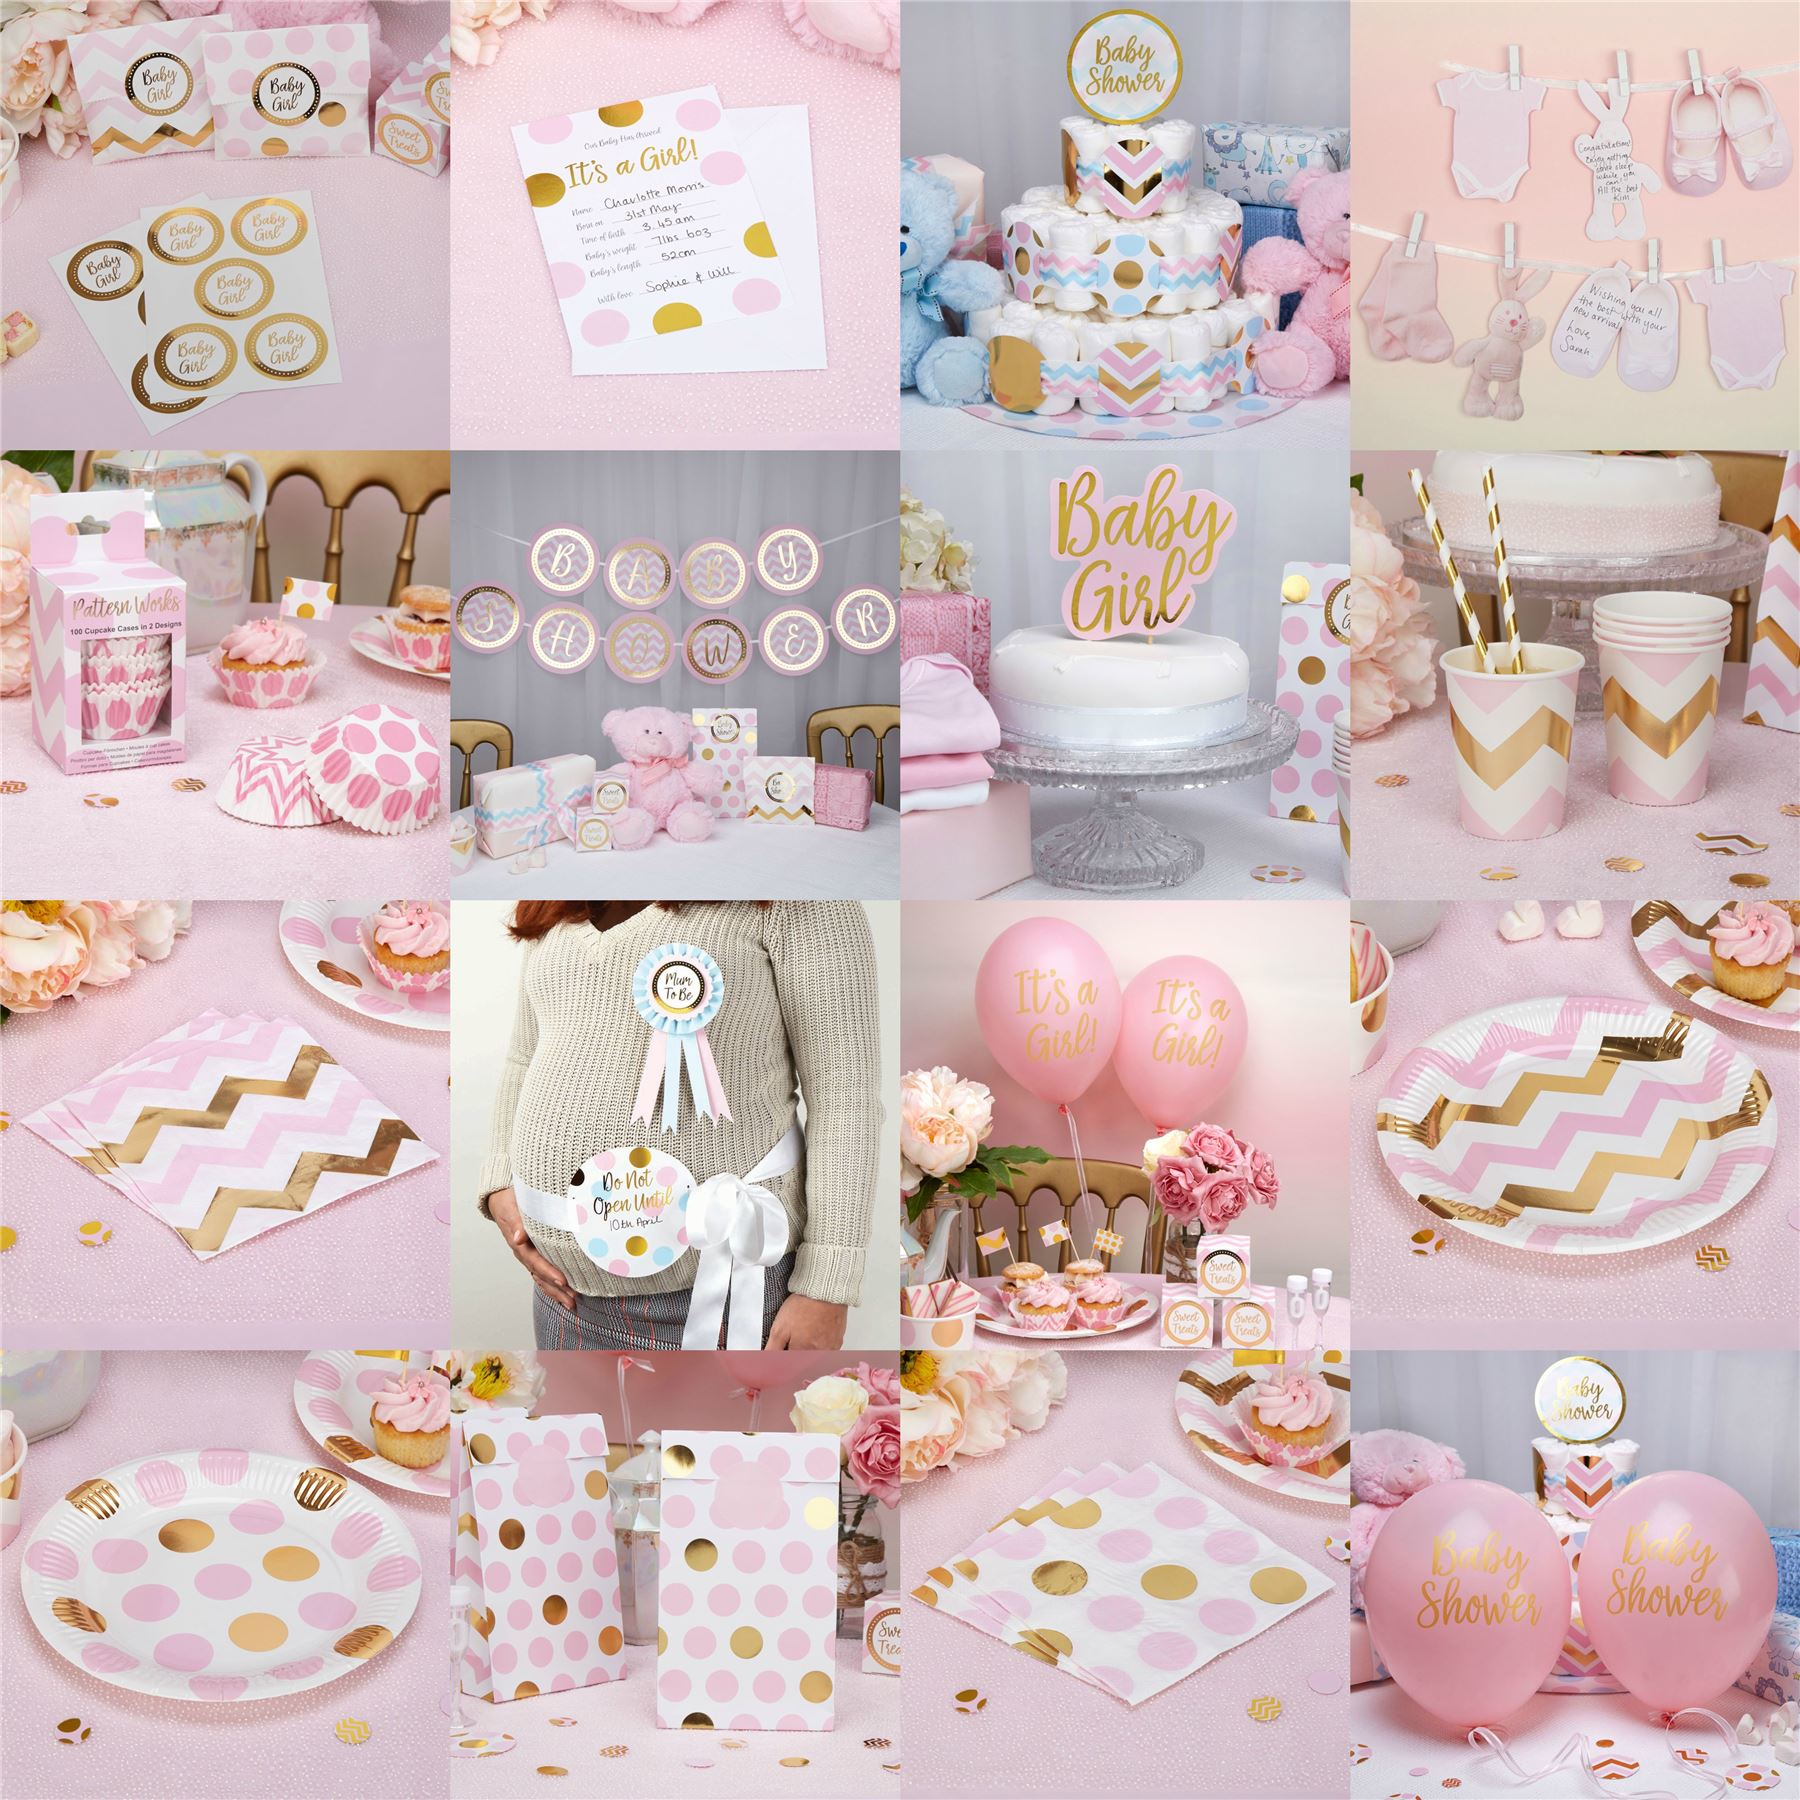 Mesmerizing Girls Party Decorations  Ebay With Glamorous Pattern Pink Baby Shower Girls Party Decorations Christening Tableware  Birthday With Delectable Almondsbury Garden Centre Bristol Also Welwyn Garden City Pubs In Addition Garden Of Eden Cyprus And Best Gardens Uk As Well As Covent Garden Be At One Additionally Garden Gates Northern Ireland From Ebaycouk With   Glamorous Girls Party Decorations  Ebay With Delectable Pattern Pink Baby Shower Girls Party Decorations Christening Tableware  Birthday And Mesmerizing Almondsbury Garden Centre Bristol Also Welwyn Garden City Pubs In Addition Garden Of Eden Cyprus From Ebaycouk